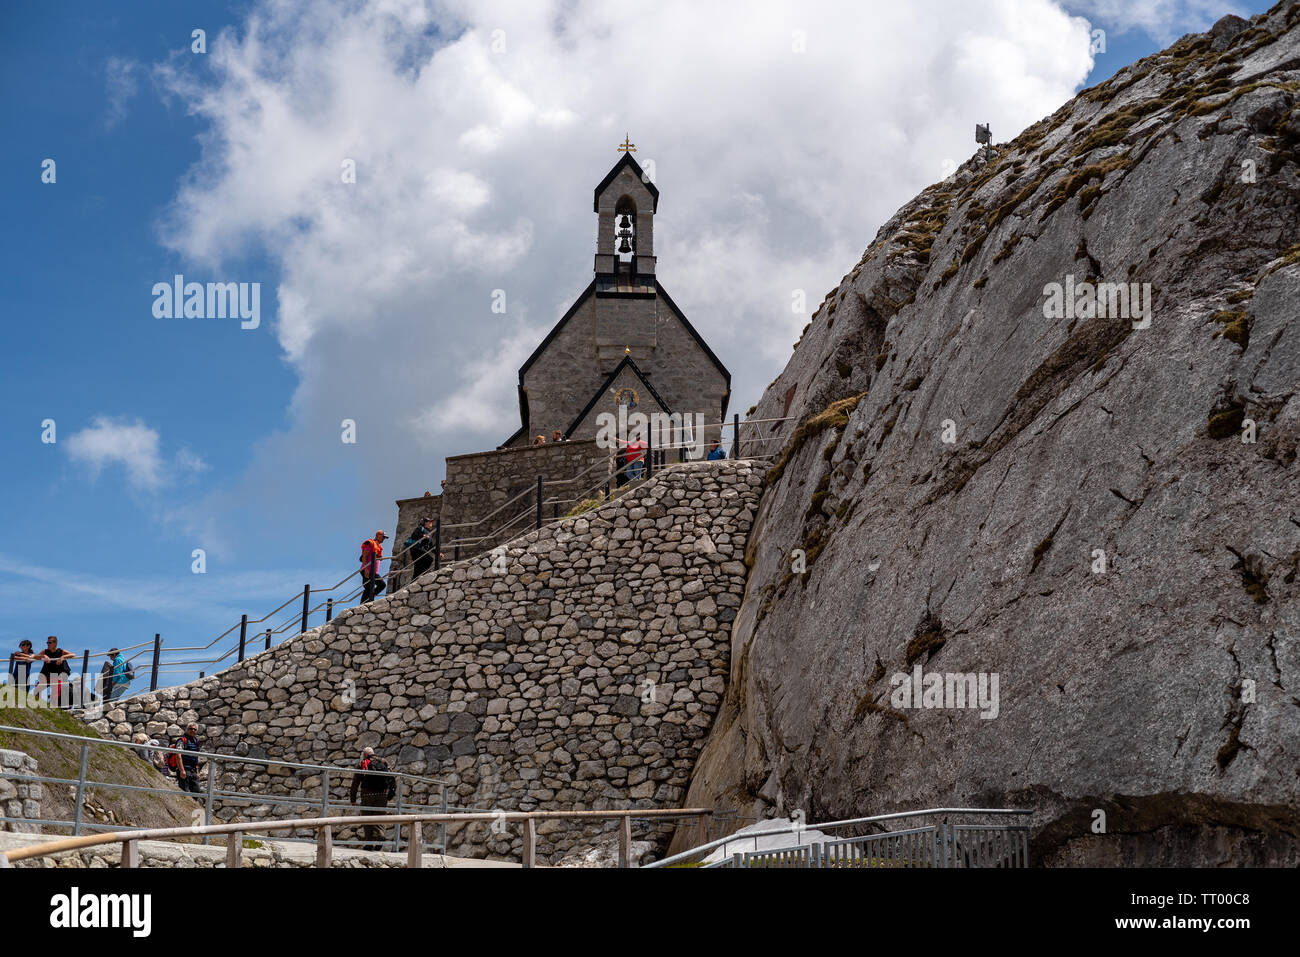 Bayrischzell, Bavaria, Germany - June 1, 2019.  The Wendelsteinkircherl highest church is a tourist attraction - Stock Image